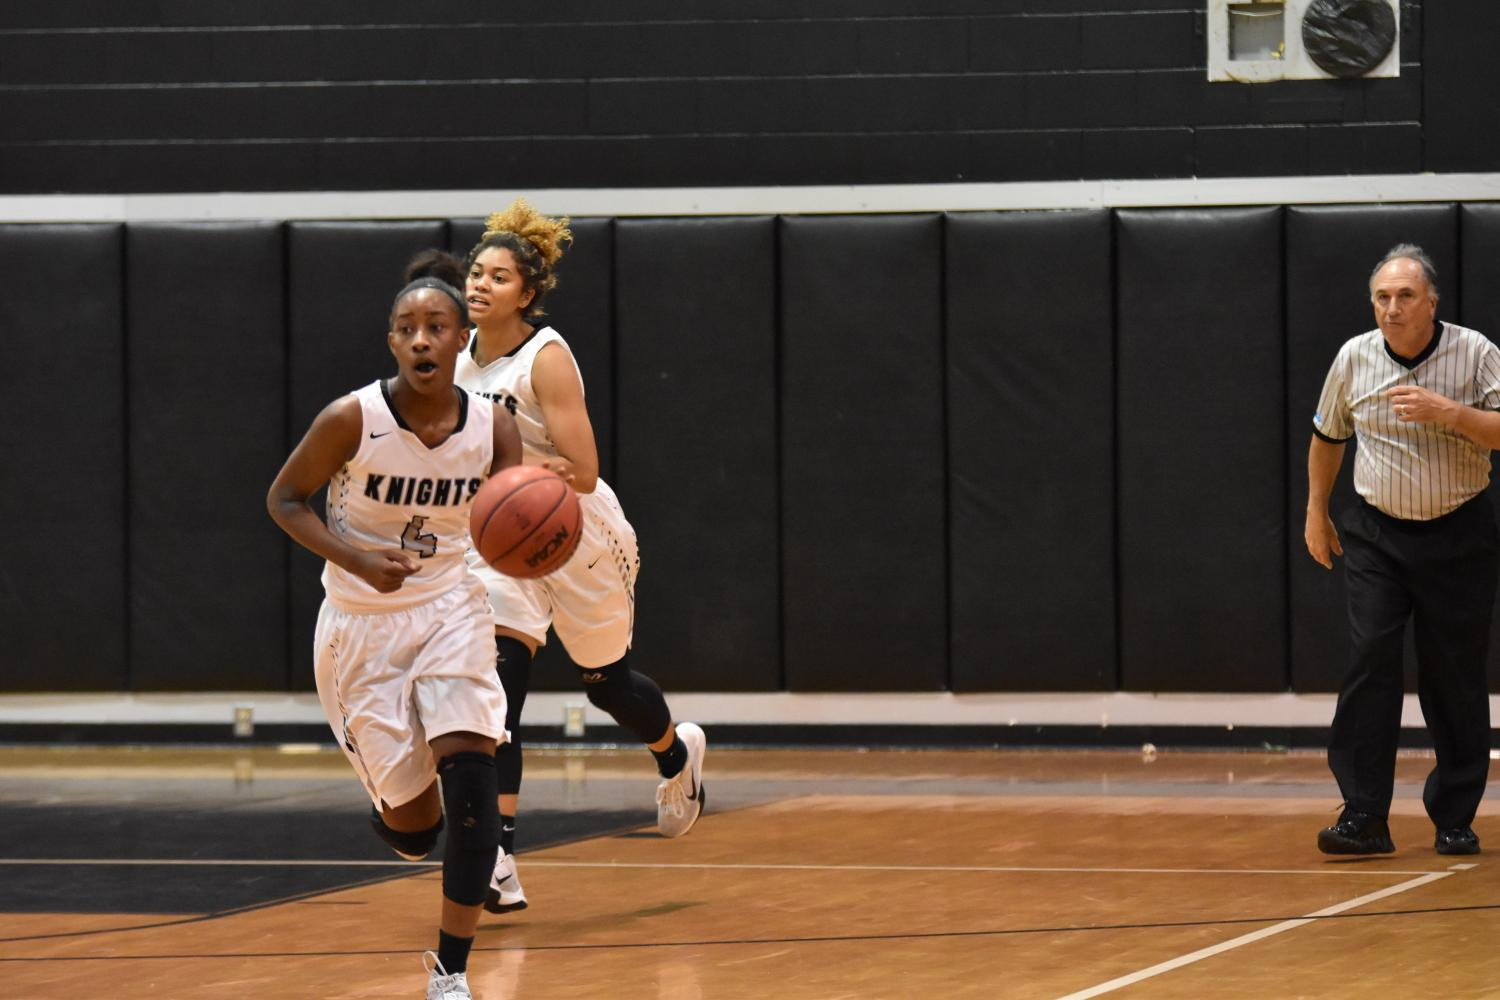 Kaliah Henderson ('18) leads her team up the court during an intense 2016-2017 season game.